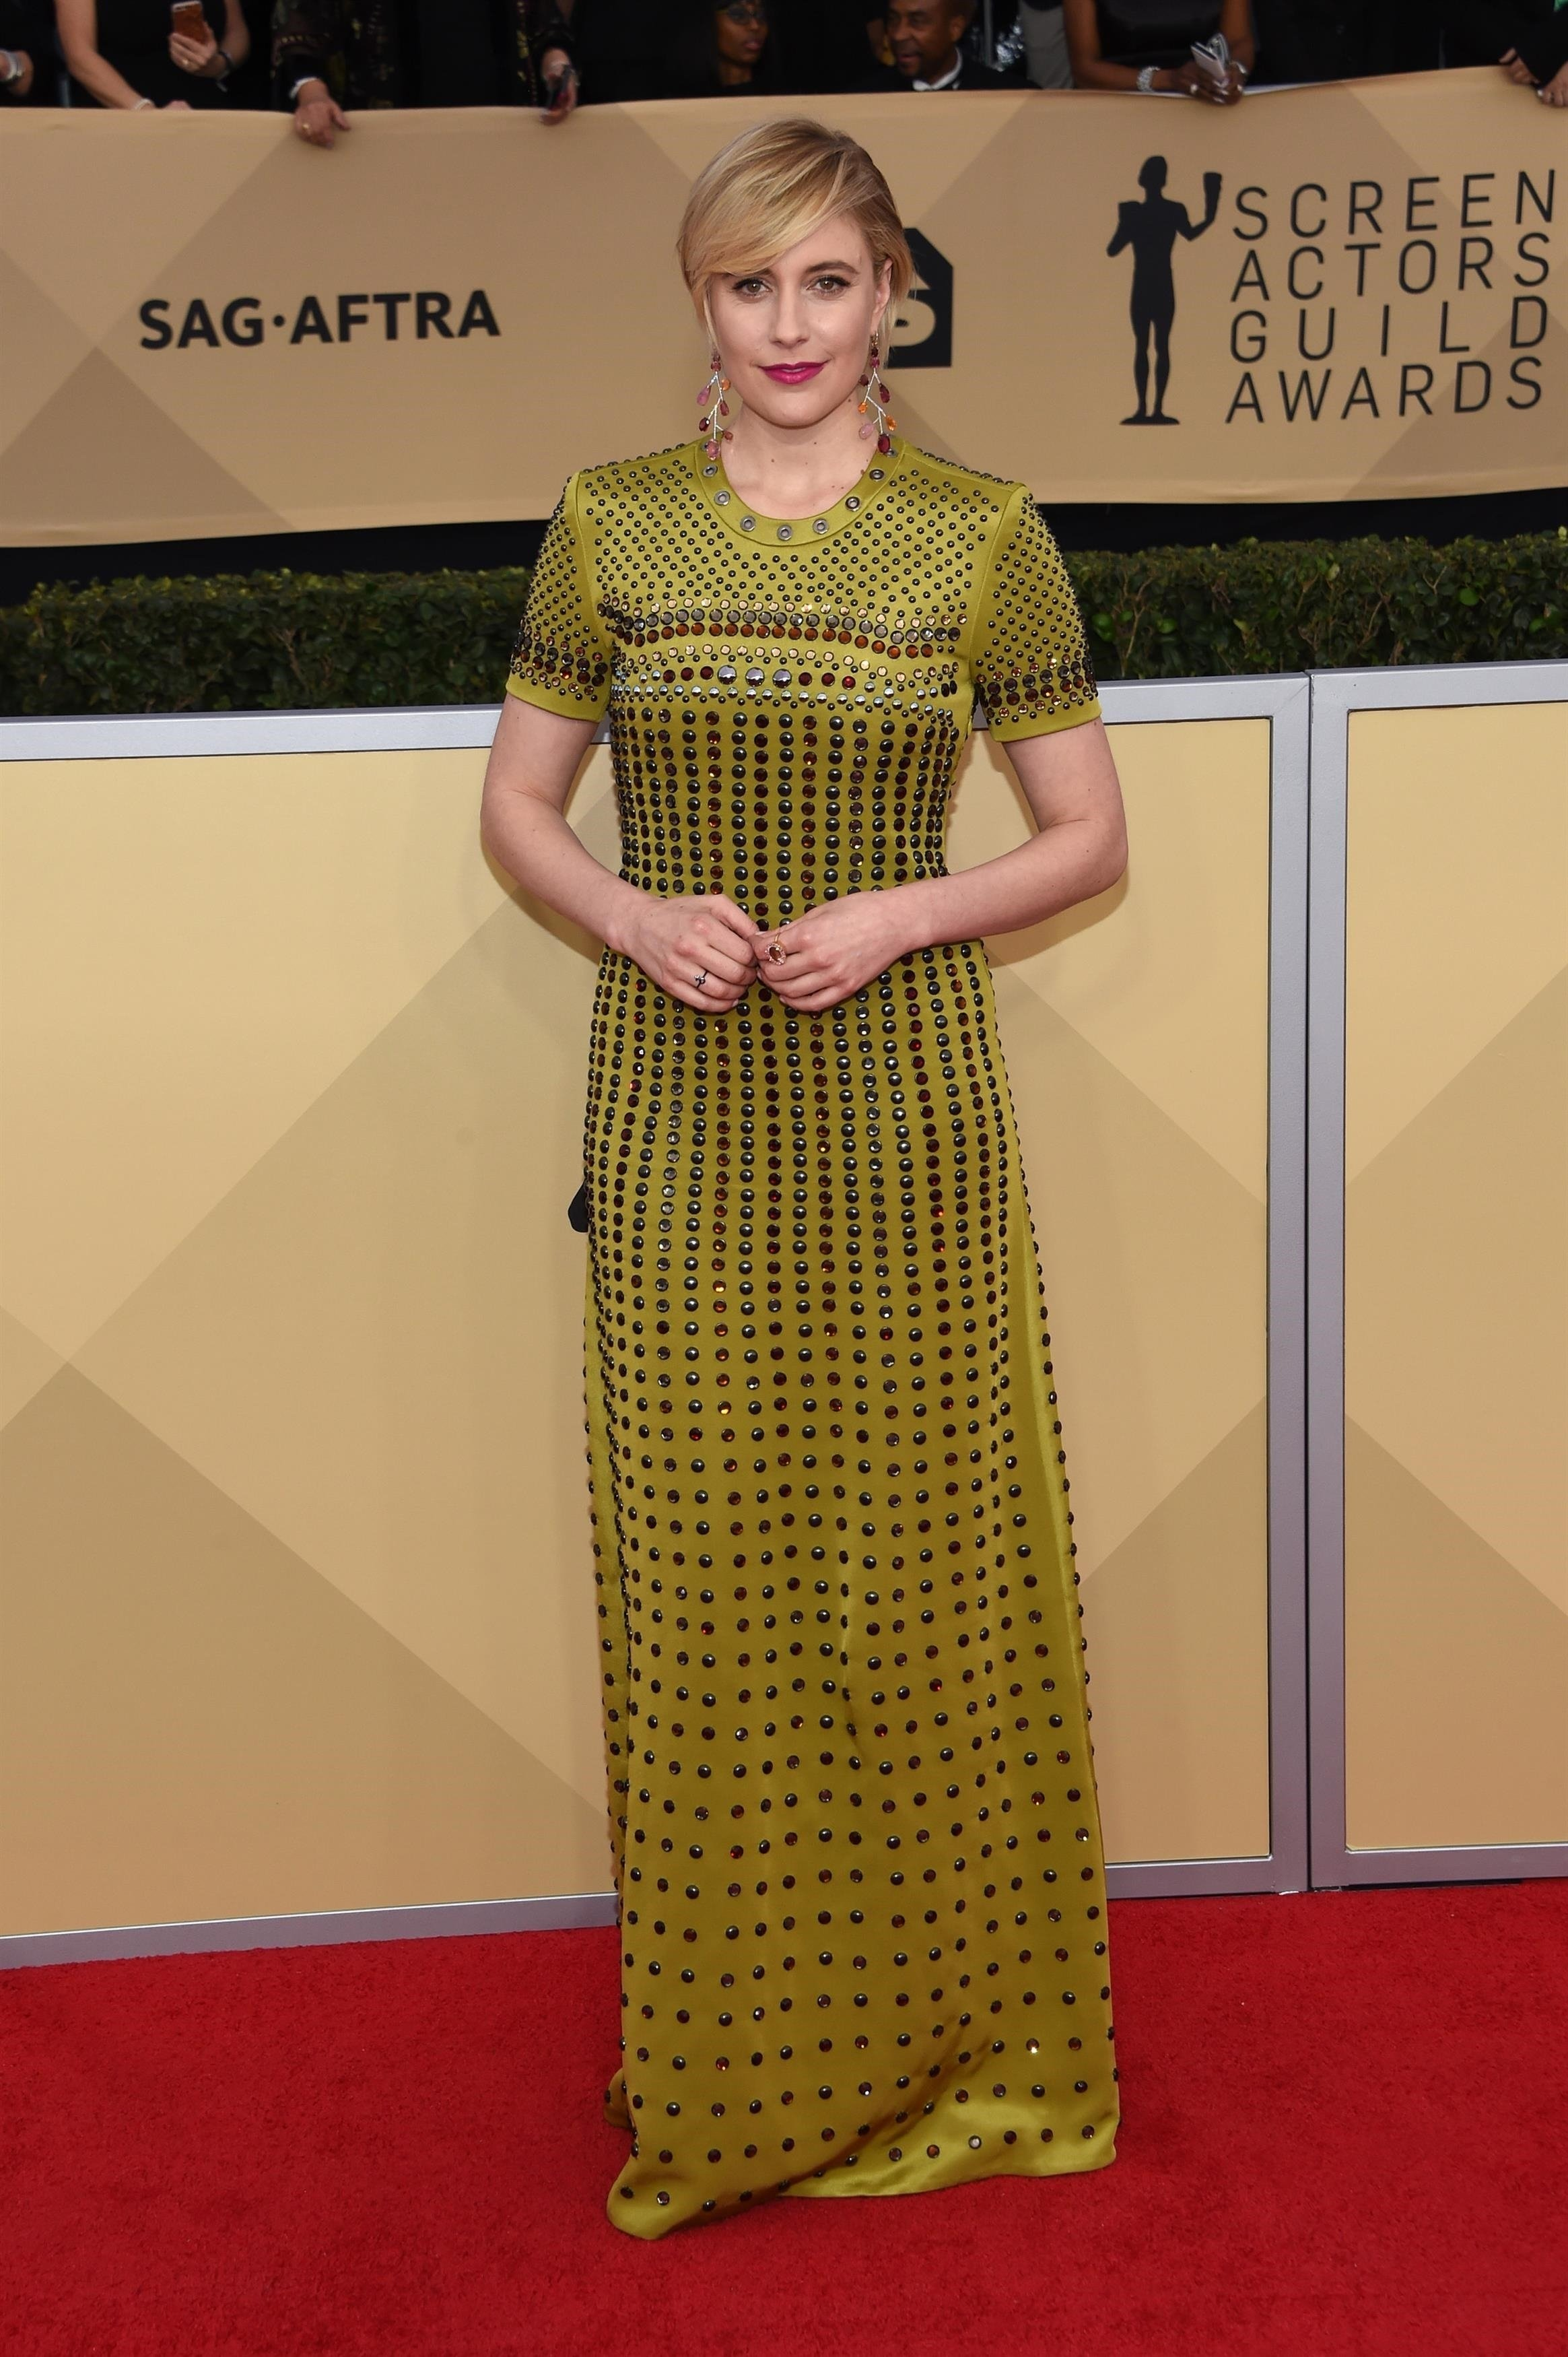 ** RIGHTS: WORLDWIDE EXCEPT IN FRANCE ** Los Angeles, CA  - Celebrities attend the 24th annual Screen Actors Guild Awards held at The Shrine Auditorium in Los Angeles, CA.  Pictured: Greta Gerwig    *UK Clients - Pictures Containing Children Please Pixelate Face Prior To Publication*, Image: 360908950, License: Rights-managed, Restrictions: , Model Release: no, Credit line: Profimedia, AKM-GSI